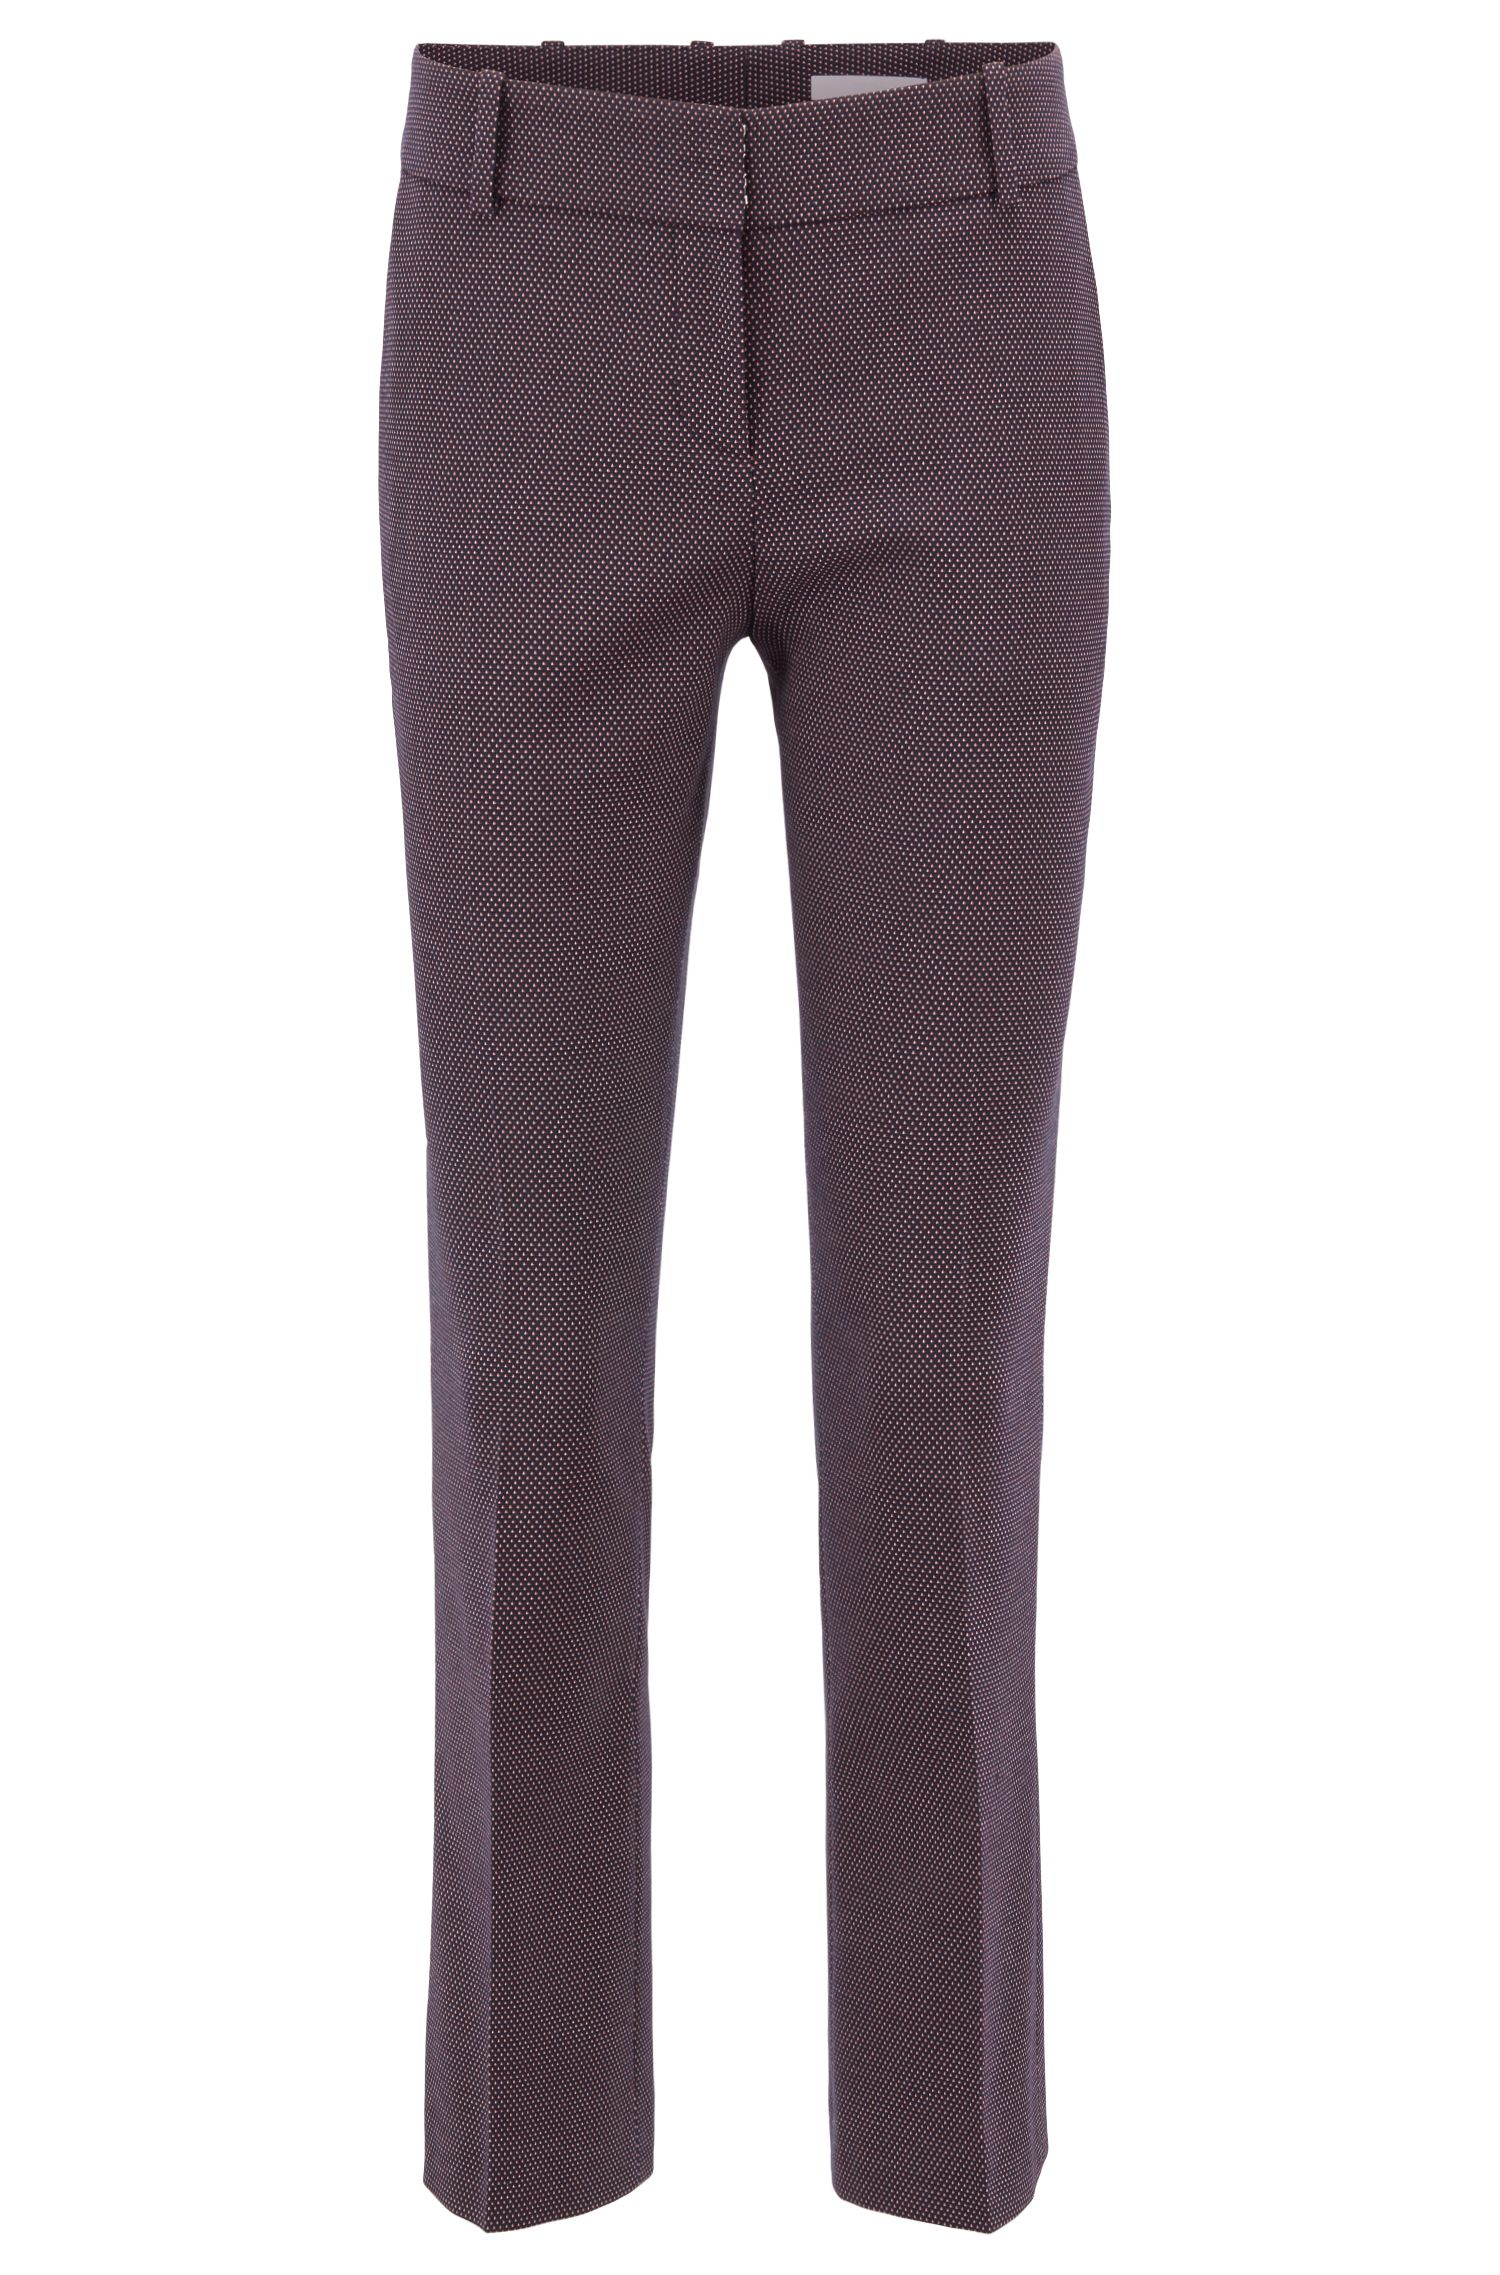 Cigarette pants in patterned stretch fabric with cropped leg, Patterned